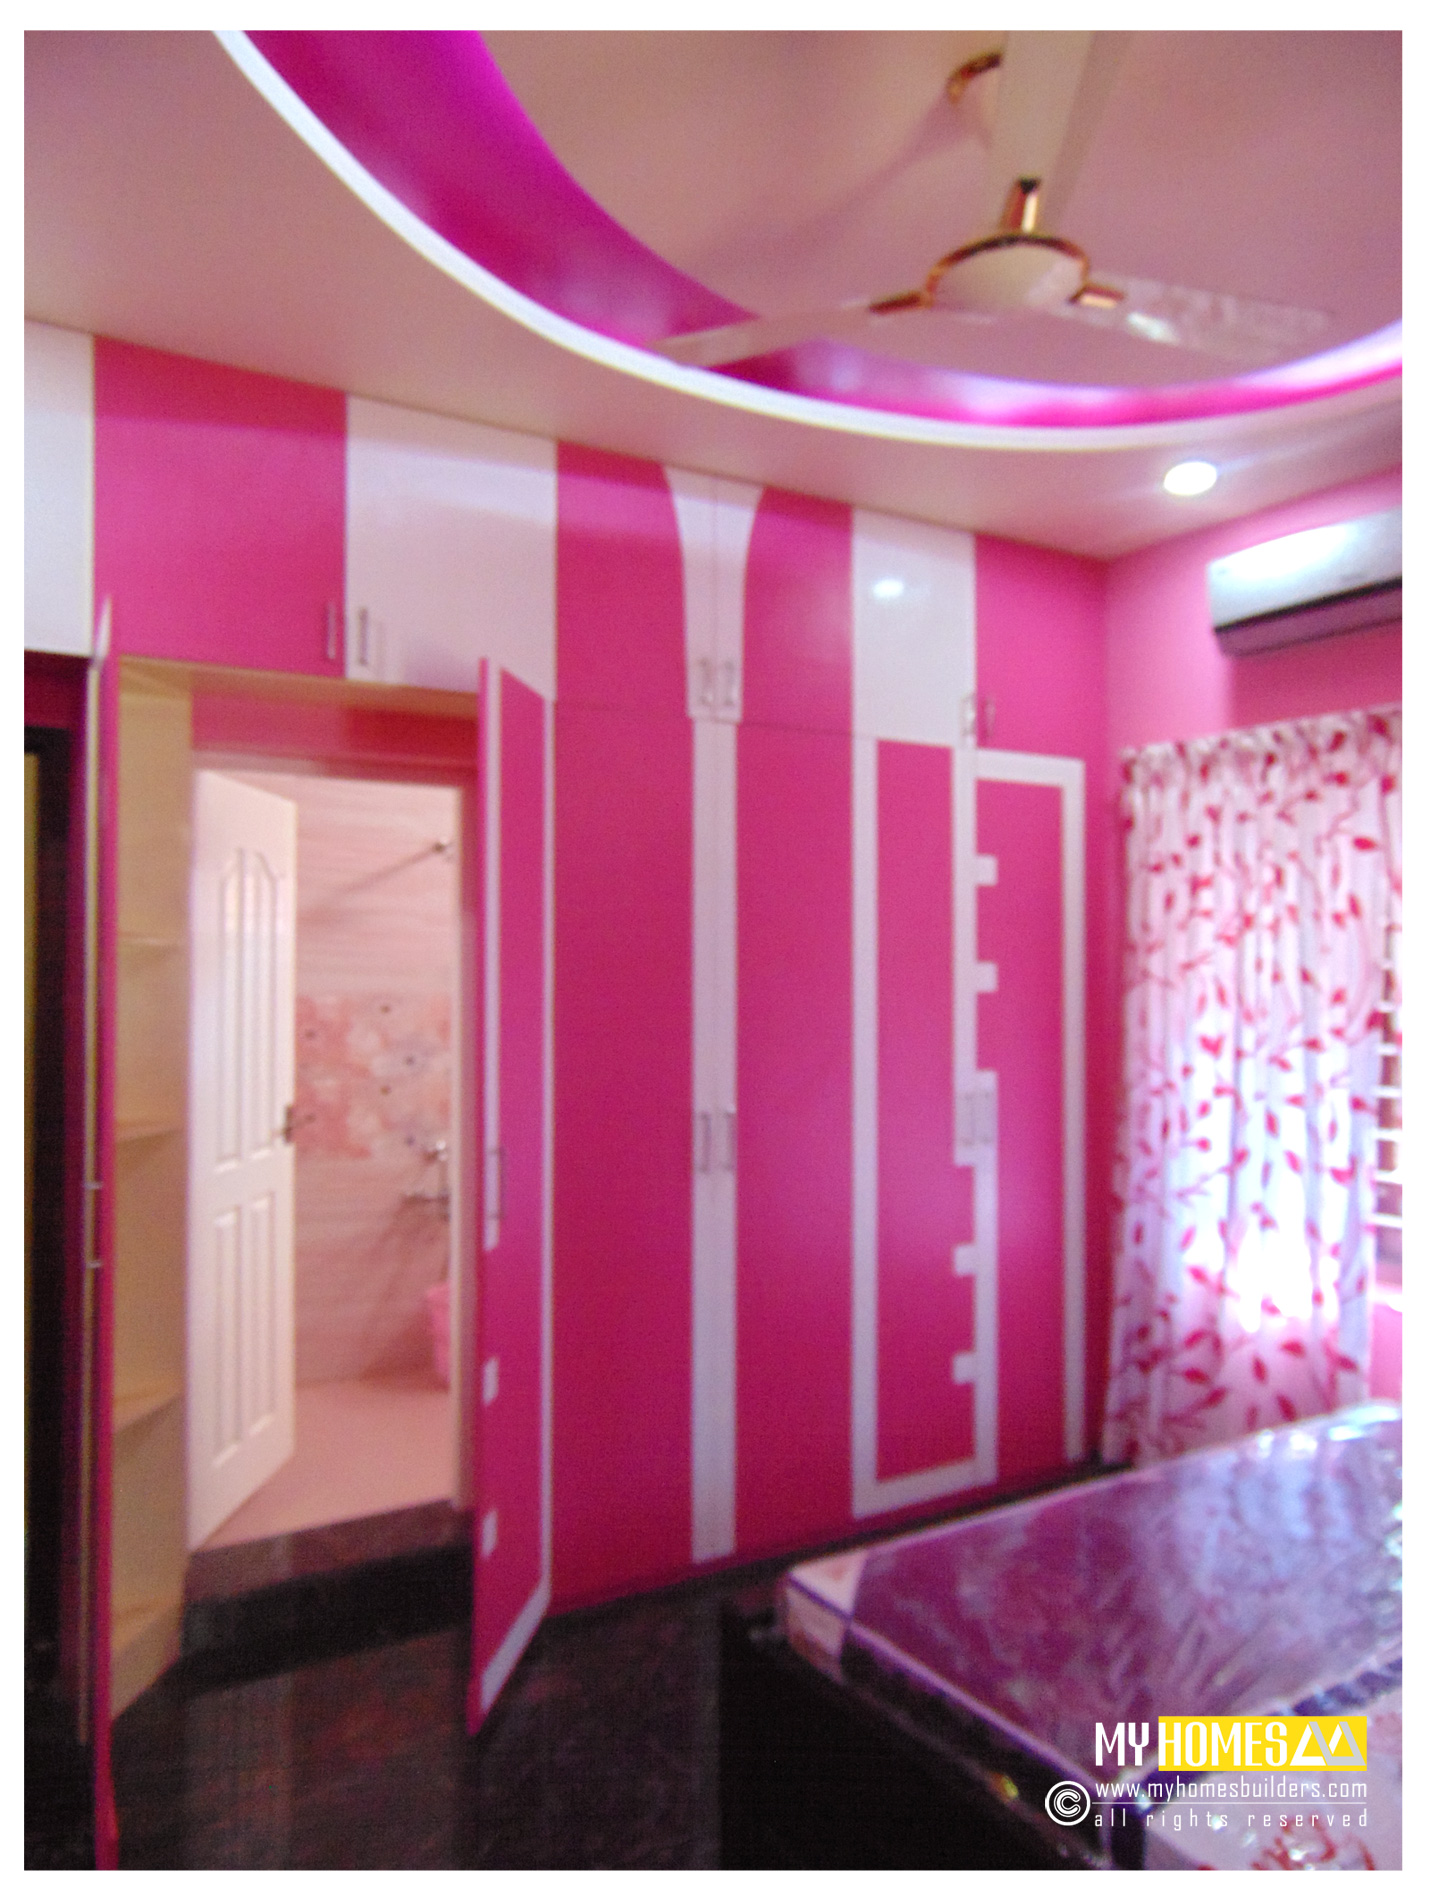 Modern interior idea for home bedroom designs kerala india - Interior bedroom design ideas teenage bedroom ...